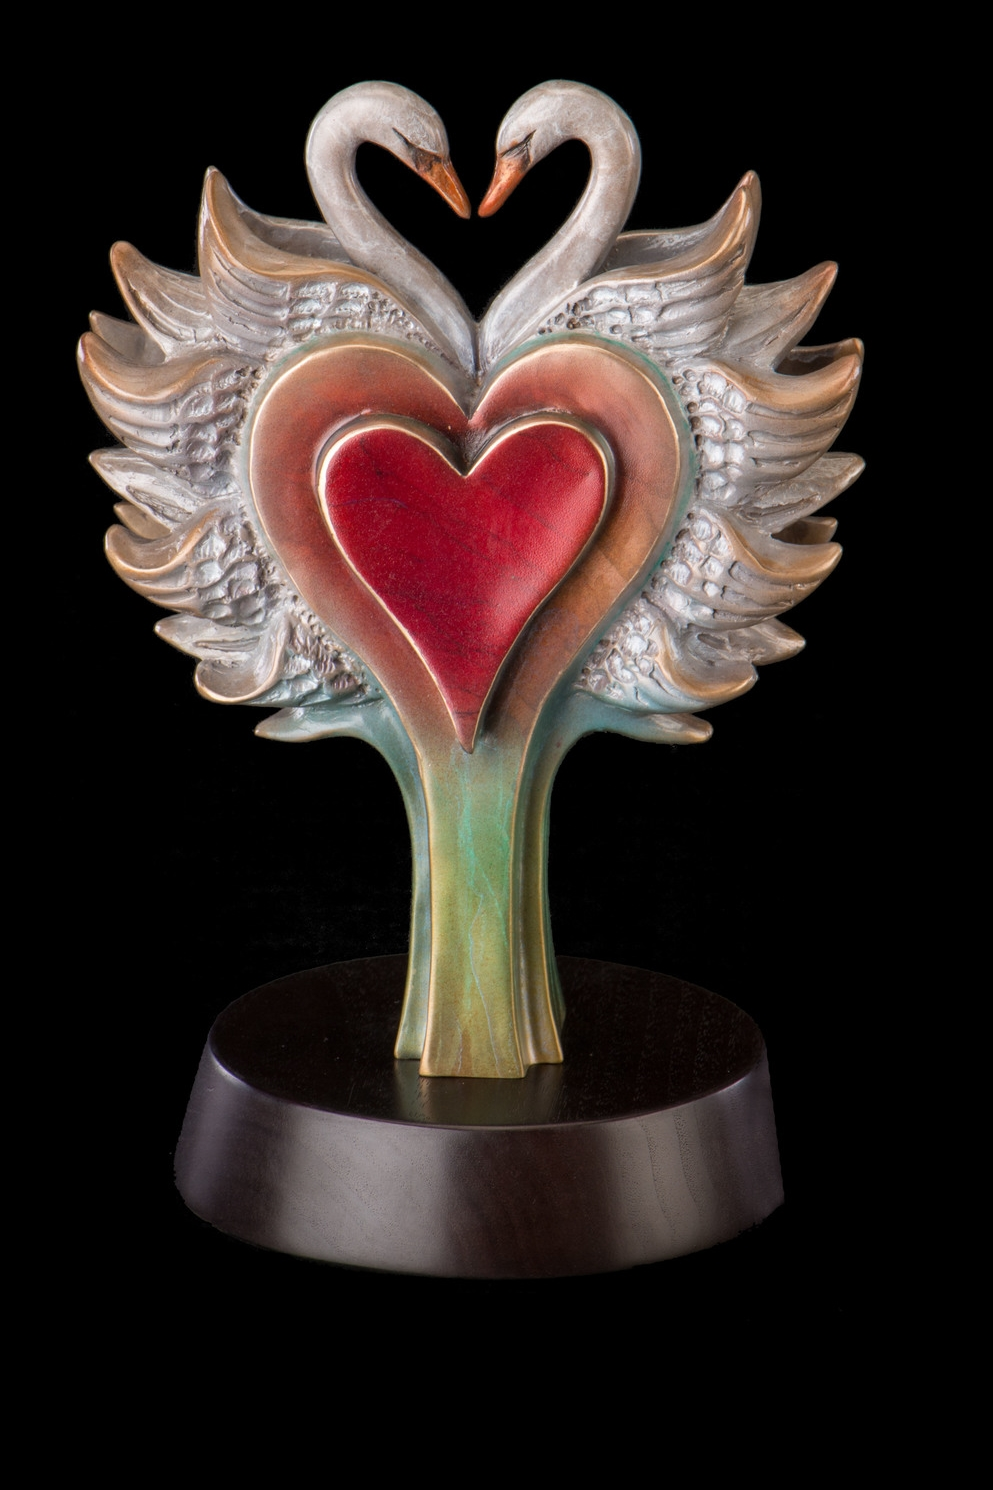 """Love Blooms, Bronze, 10.5"""" H x 6.5"""" W x 5.5 """" D,  Edition of 50: Hearts meet and receive;love blooms in all its glory."""